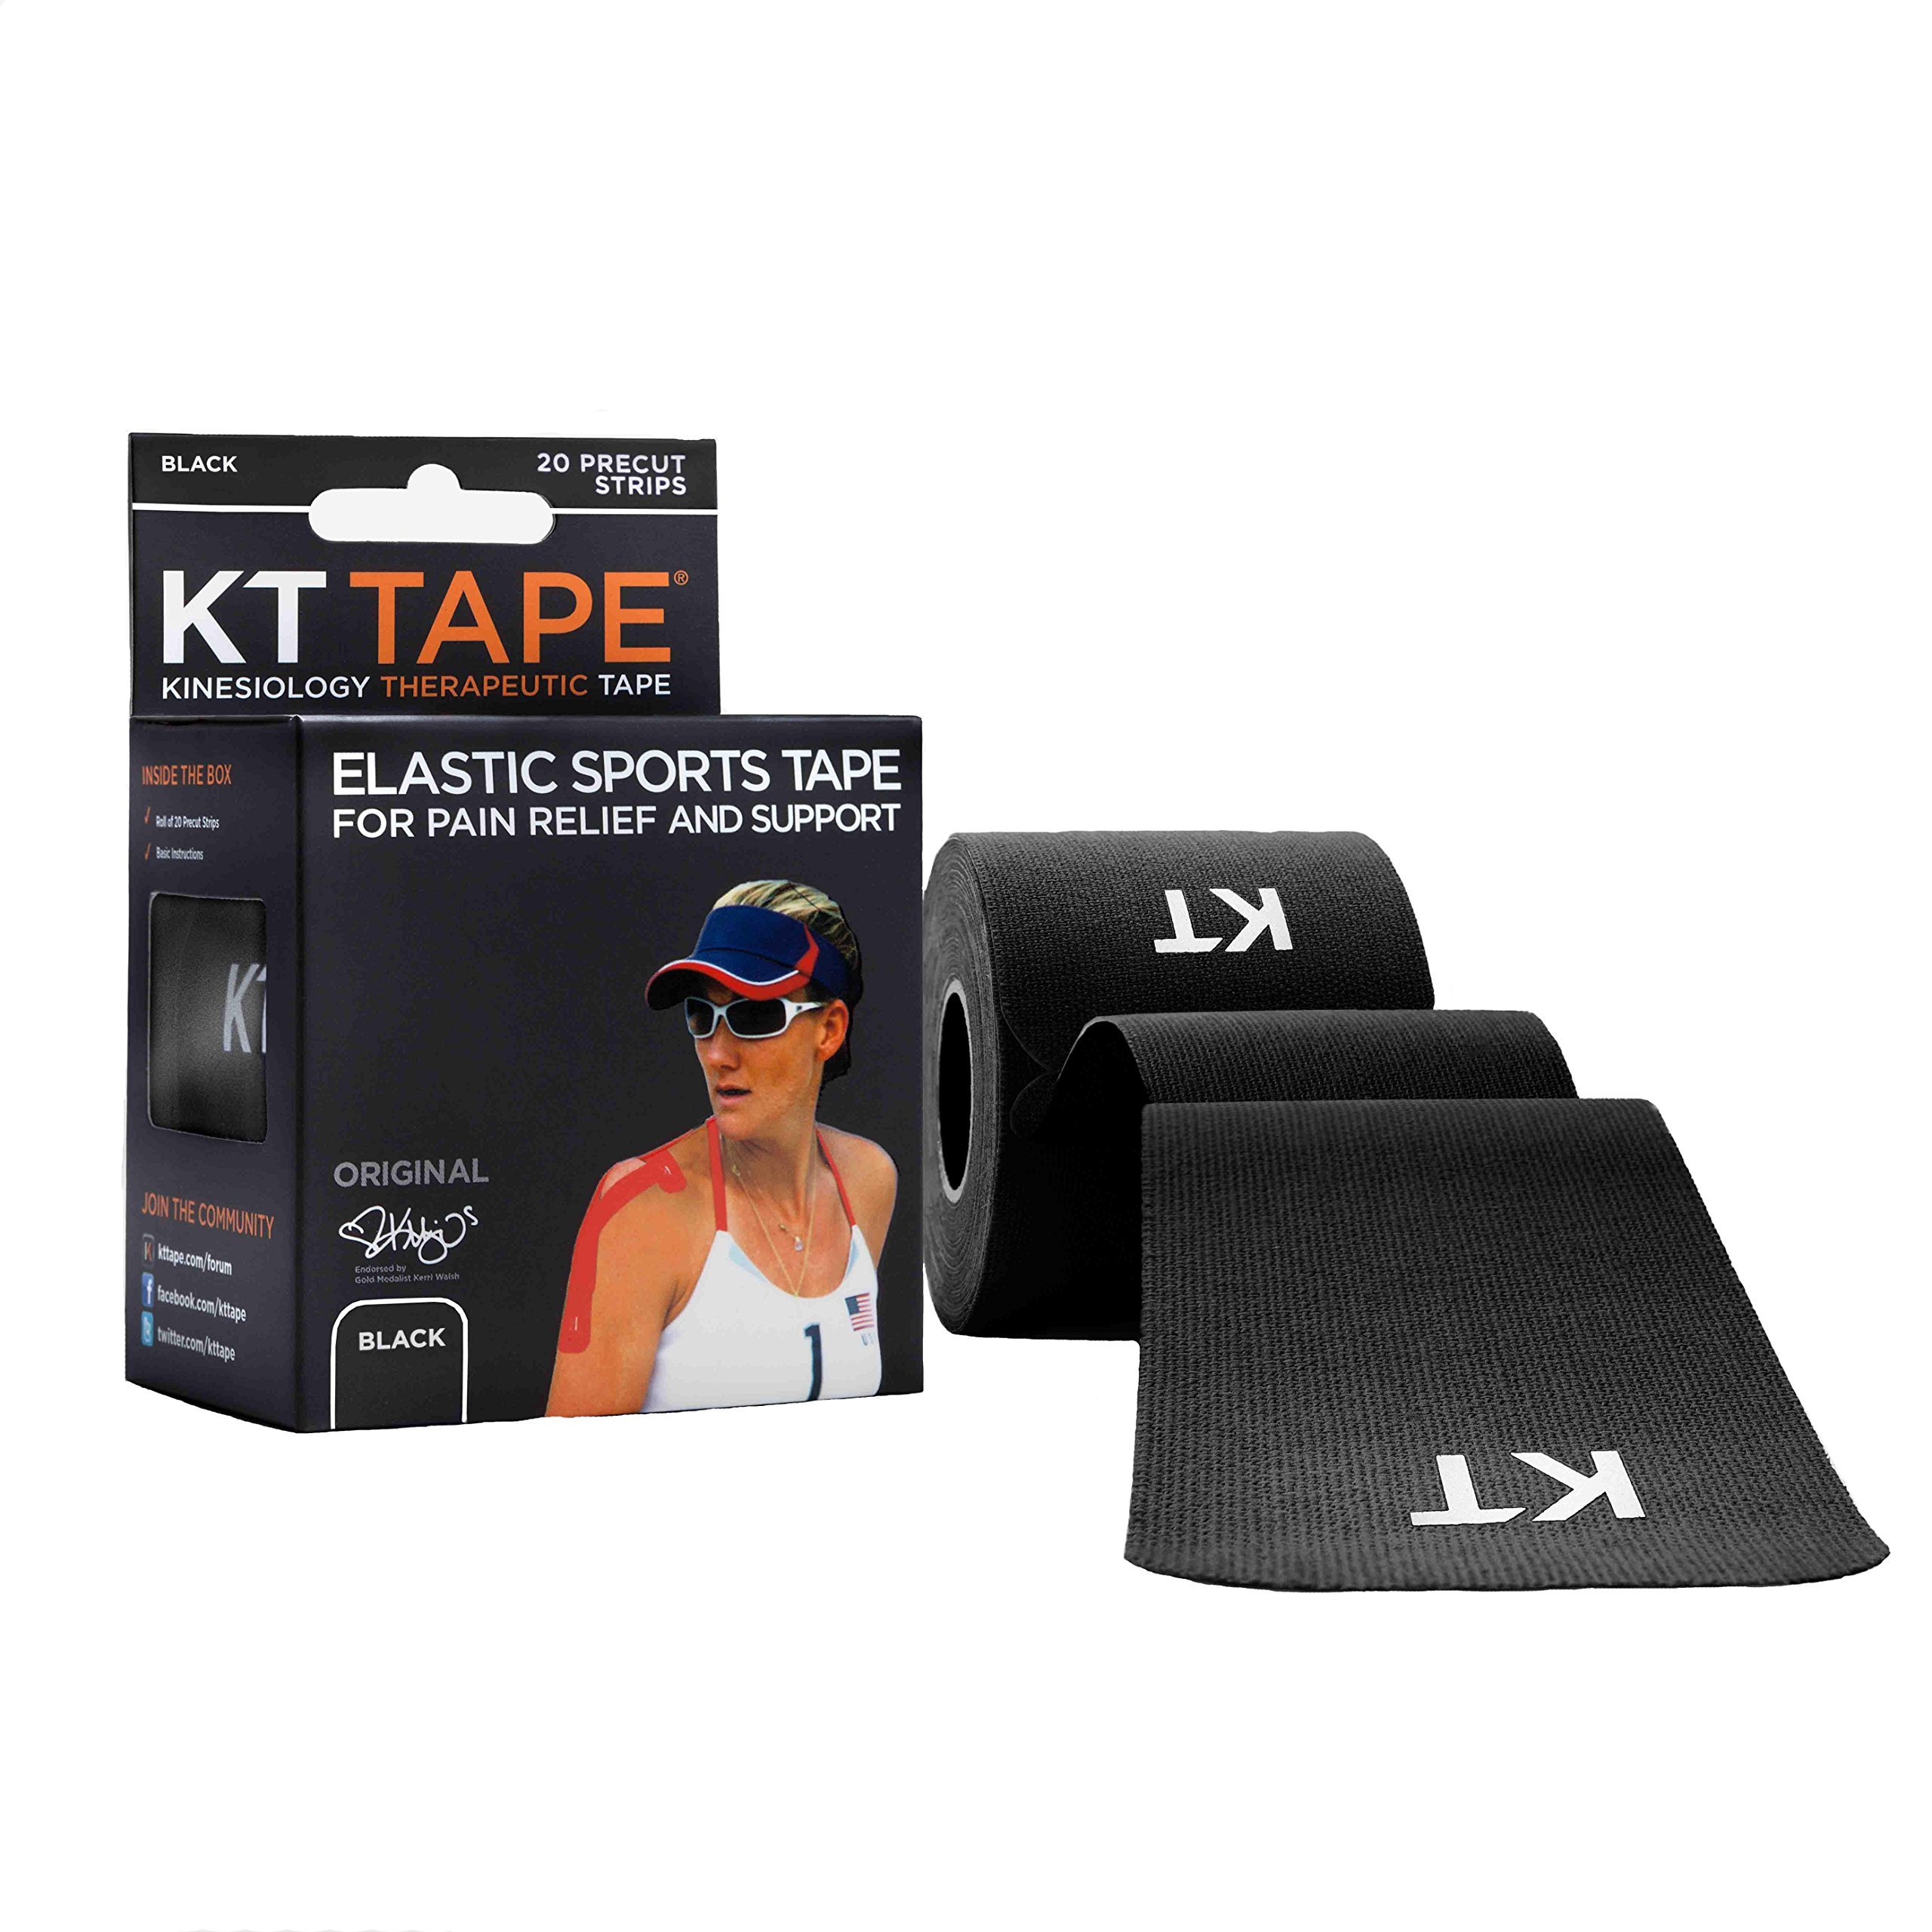 KT Tape Original Cotton Elastic Kinesiology Therapeutic Sports Tape, 20 Pre cut 10 inch Strips Black